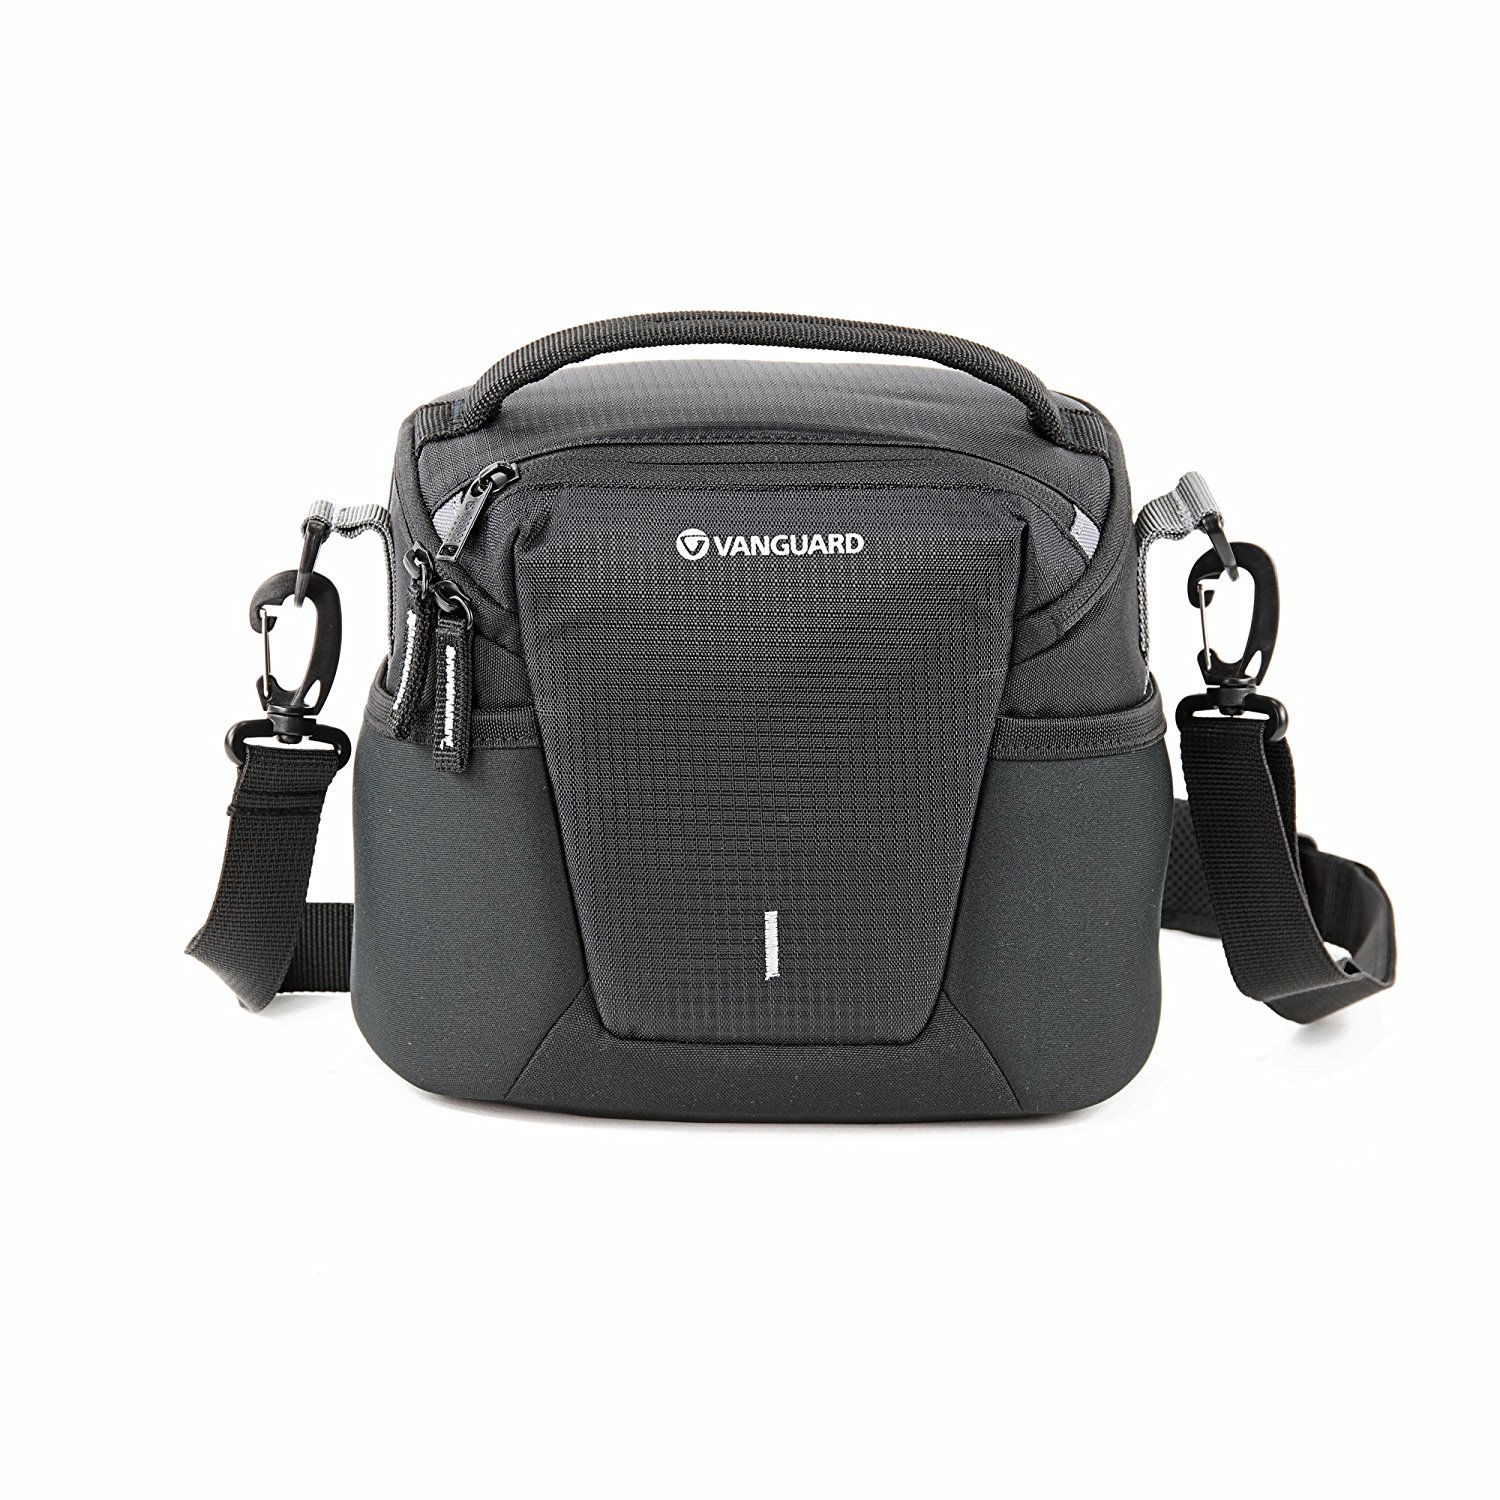 Vanguard Veo Discover 22 Shoulder Case Black